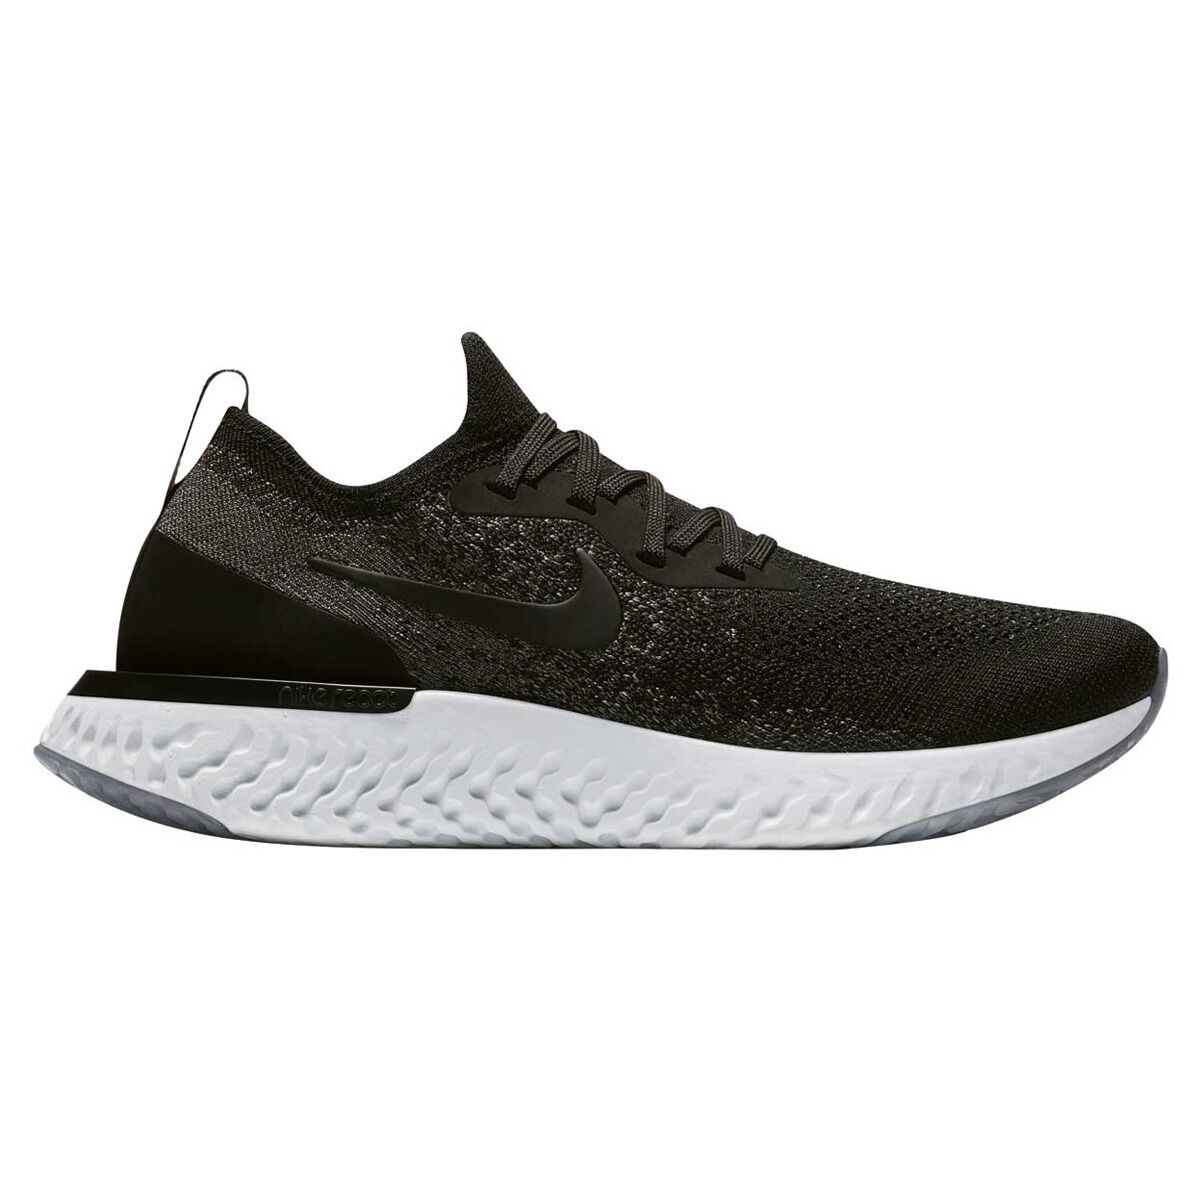 3e05bf127 ... sale nike epic react flyknit womens running shoes black white us 8 black  white d8c36 1c165